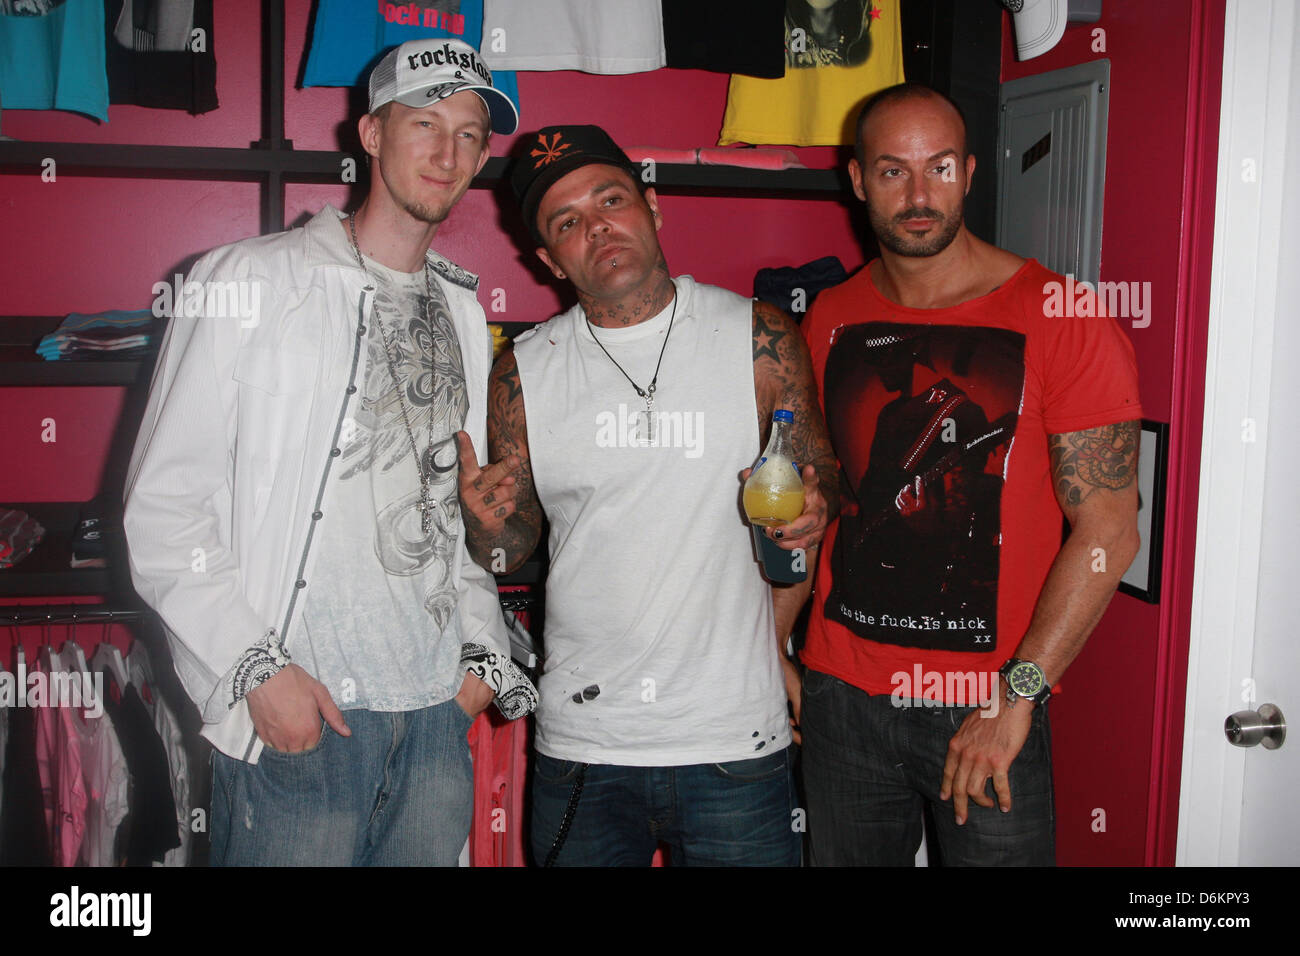 Eric Zuley, Shifty Shellshock from the group Crazy Town and German DJ Sascha Gerecht Celebrity appearances at Rockstars - Stock Image